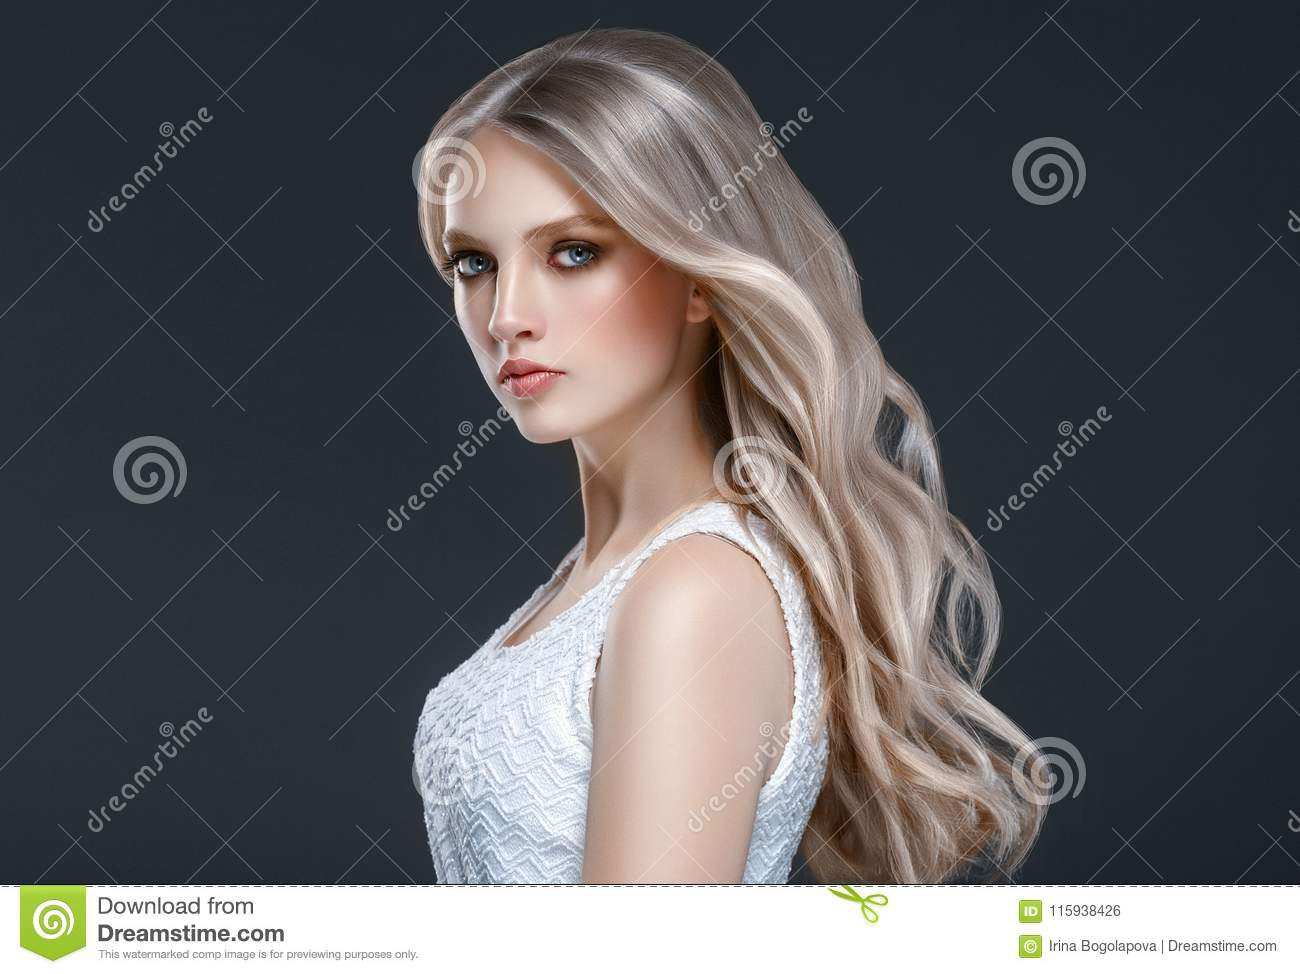 Amazing woman portrait. Beautiful girl with long wavy hair. Blonde model with hairstyle over black background